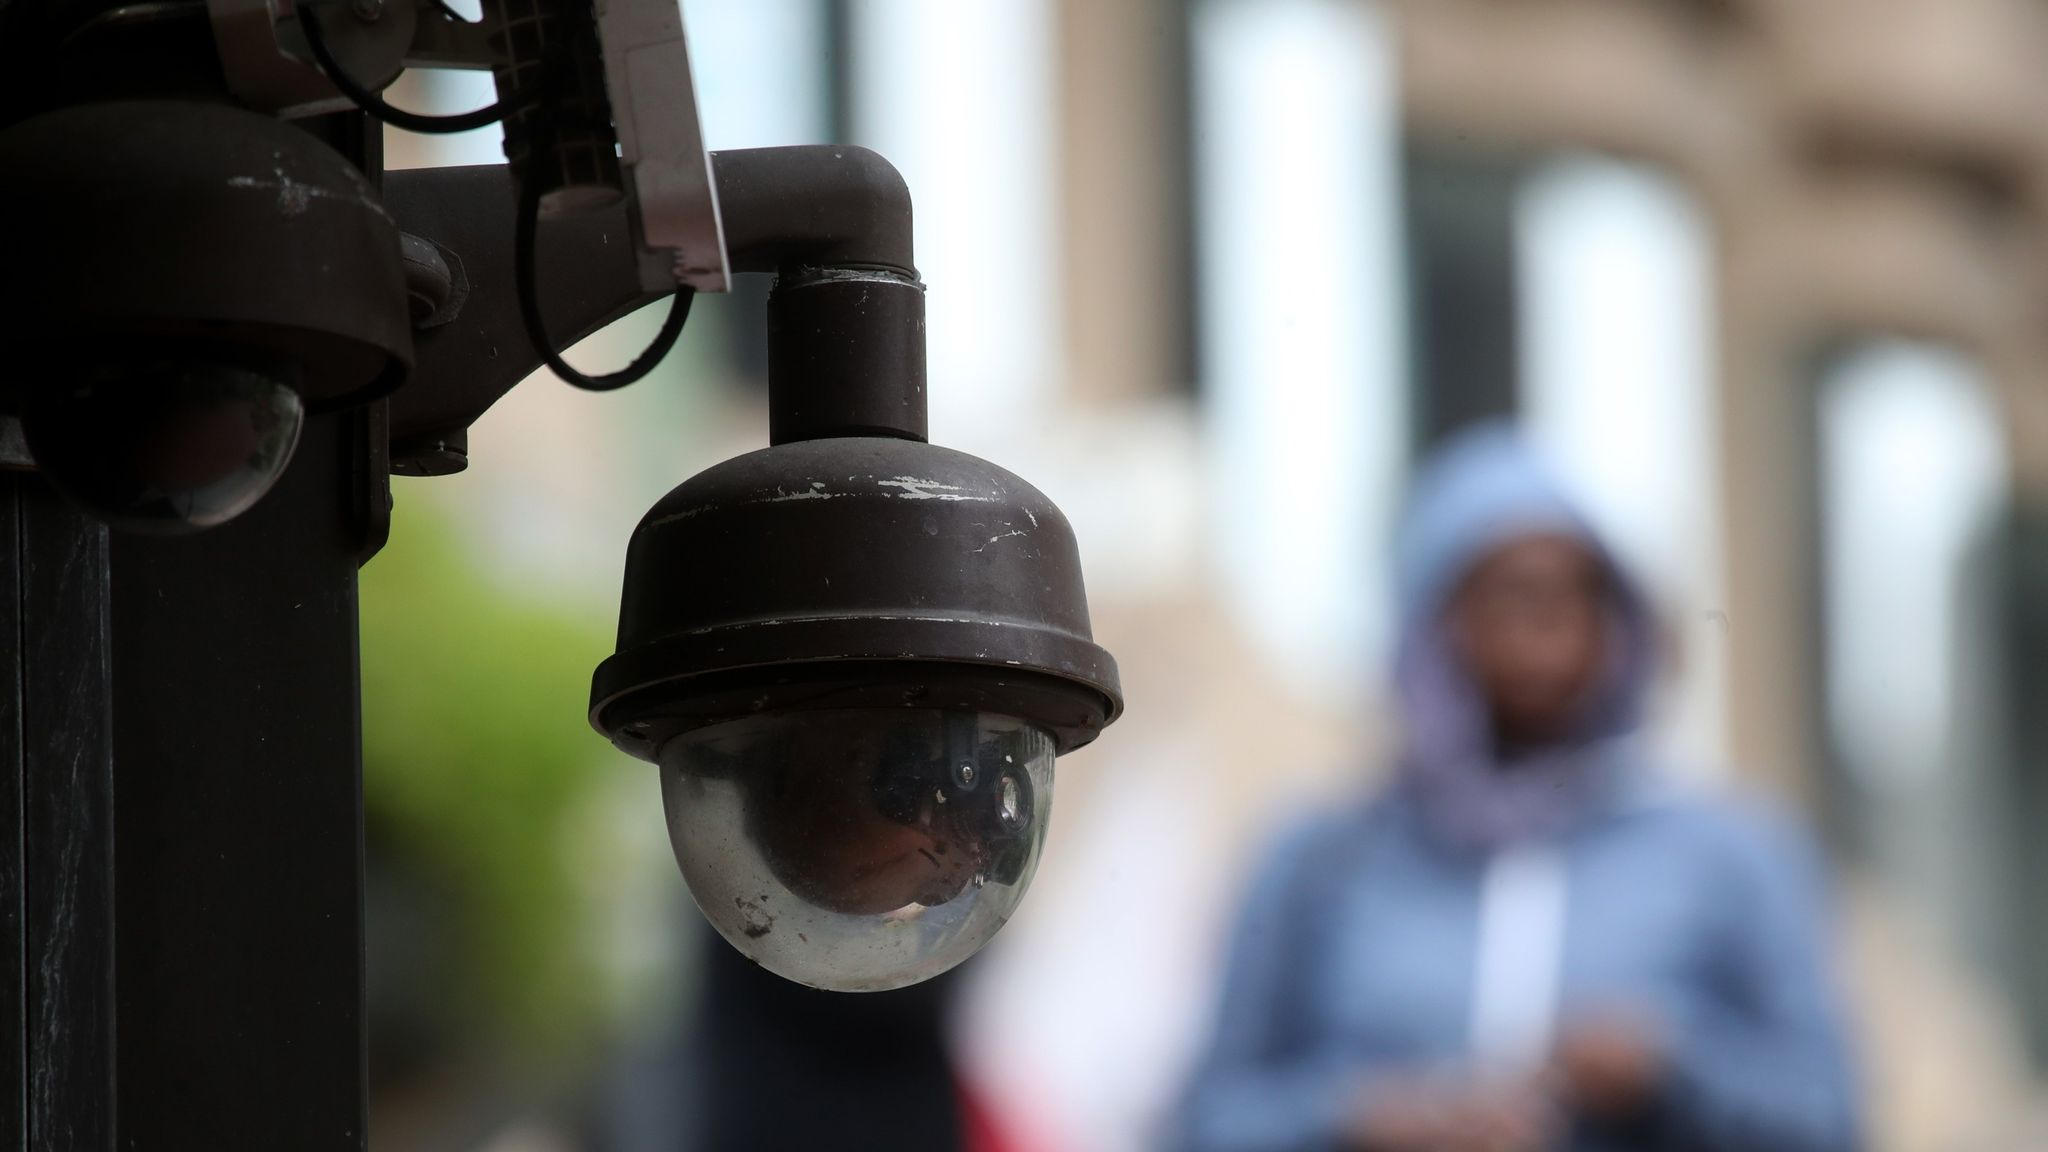 San Francisco becomes first US city to ban police from using facial recognition technology